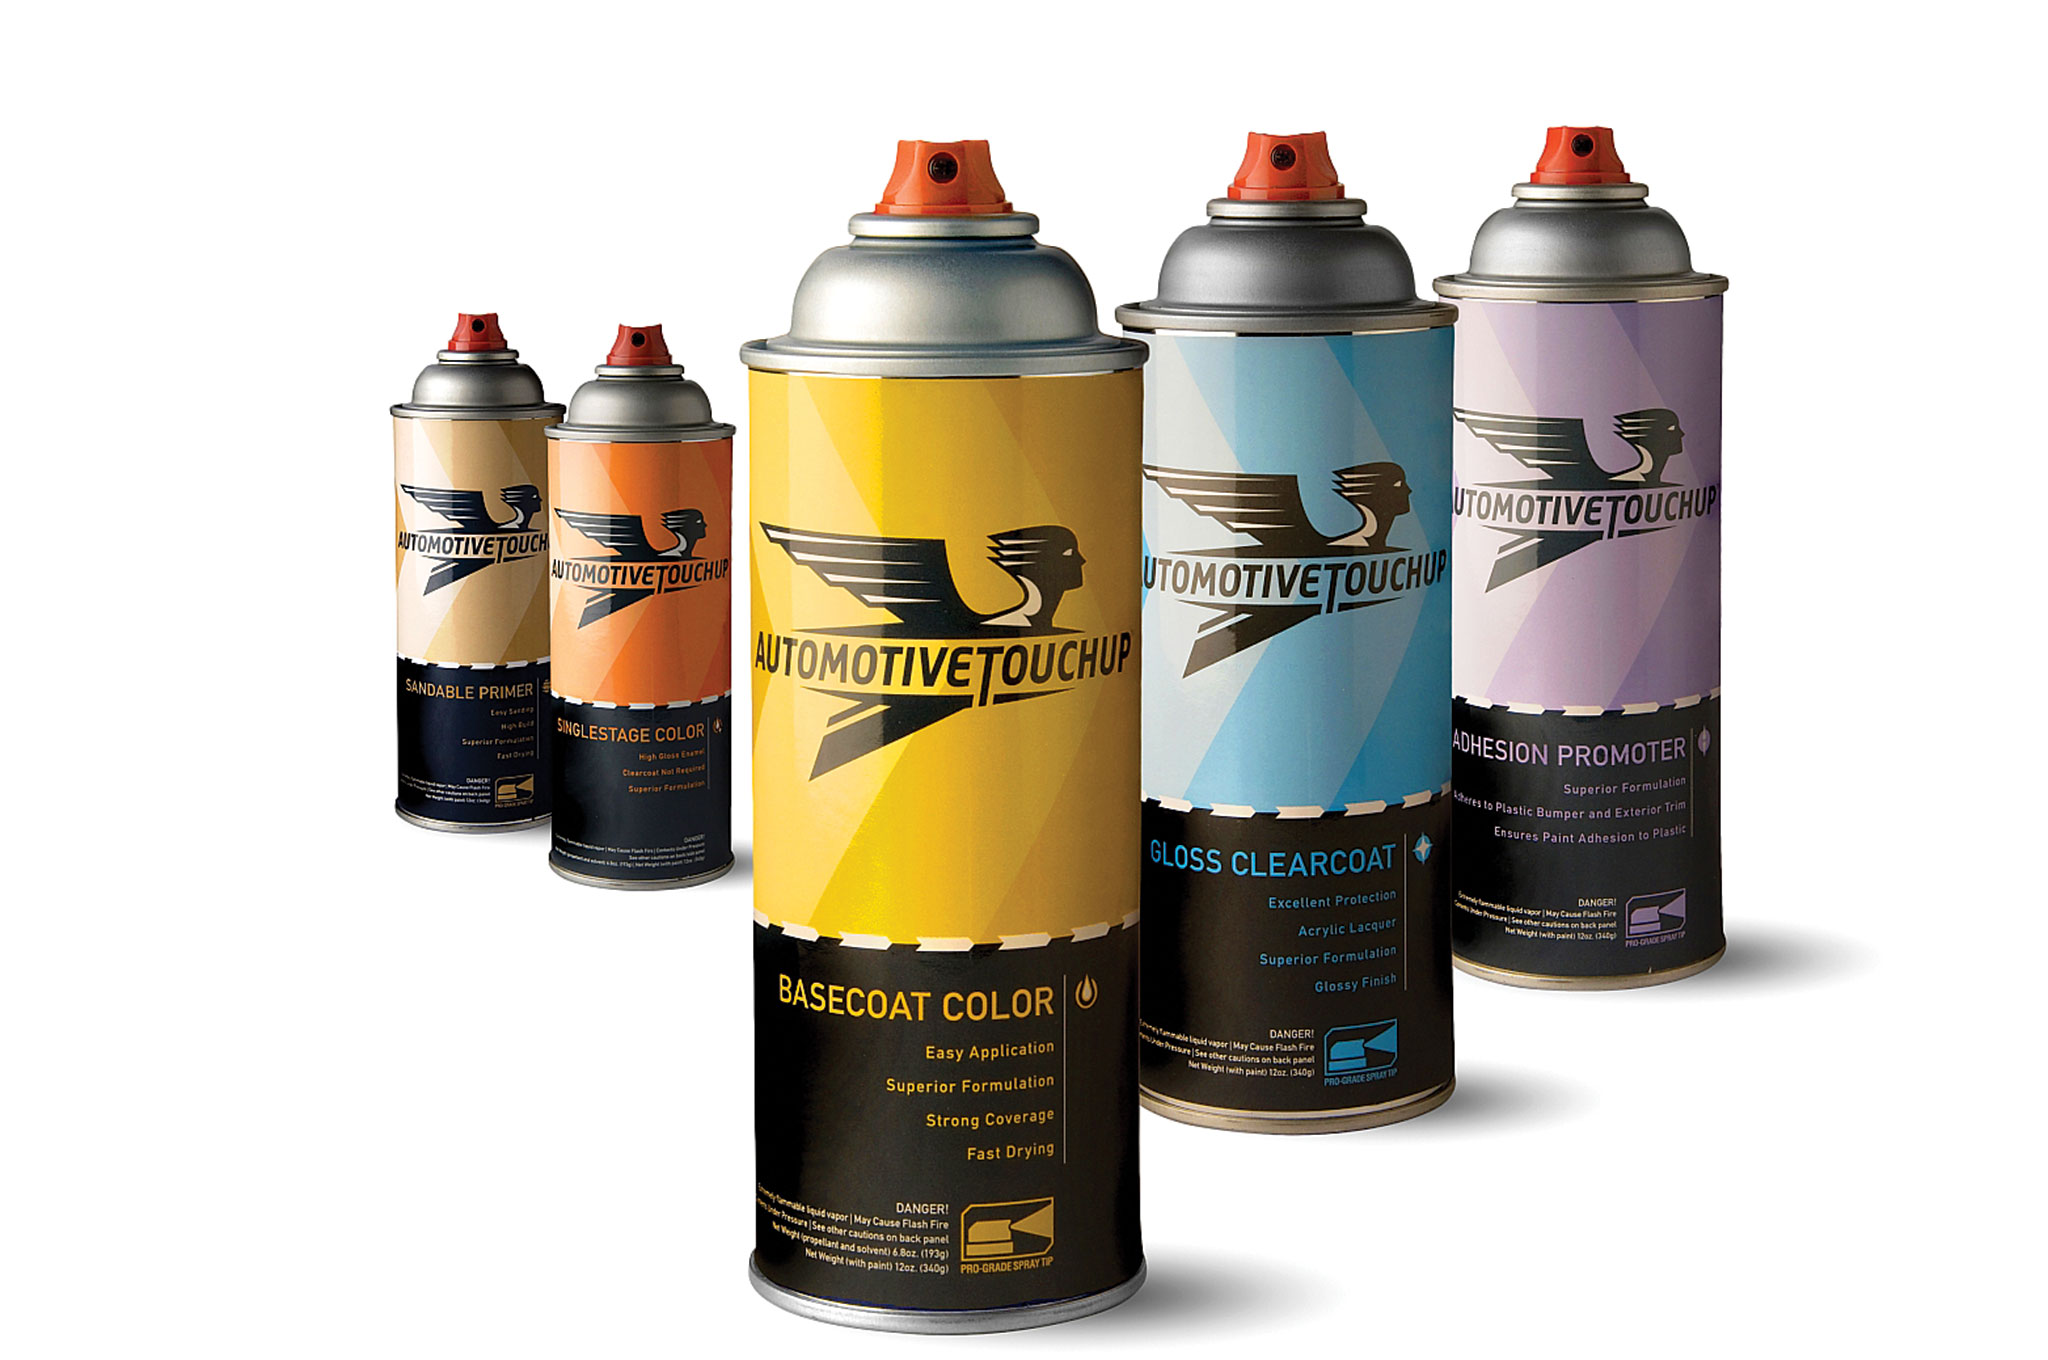 Automotive TouchUp Paints